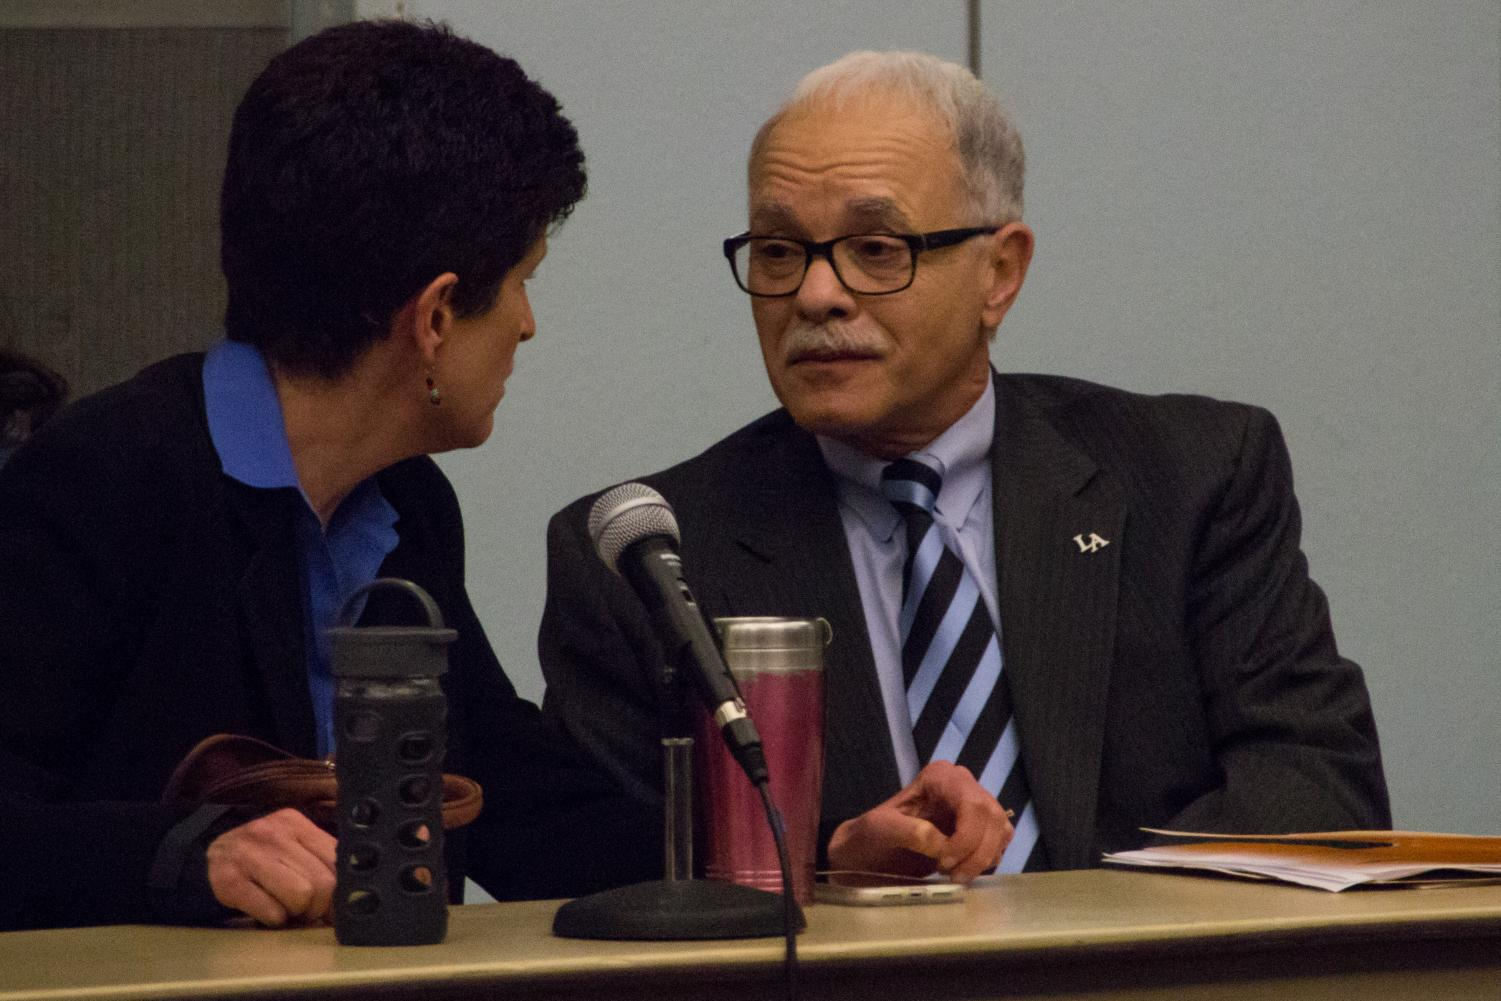 Former Provost and Vice President for Academic Affairs Dr. Lynn Mahoney (left) and Cal State LA President William A. Covino (right) at the Academic Senate meeting on Tuesday, April 23